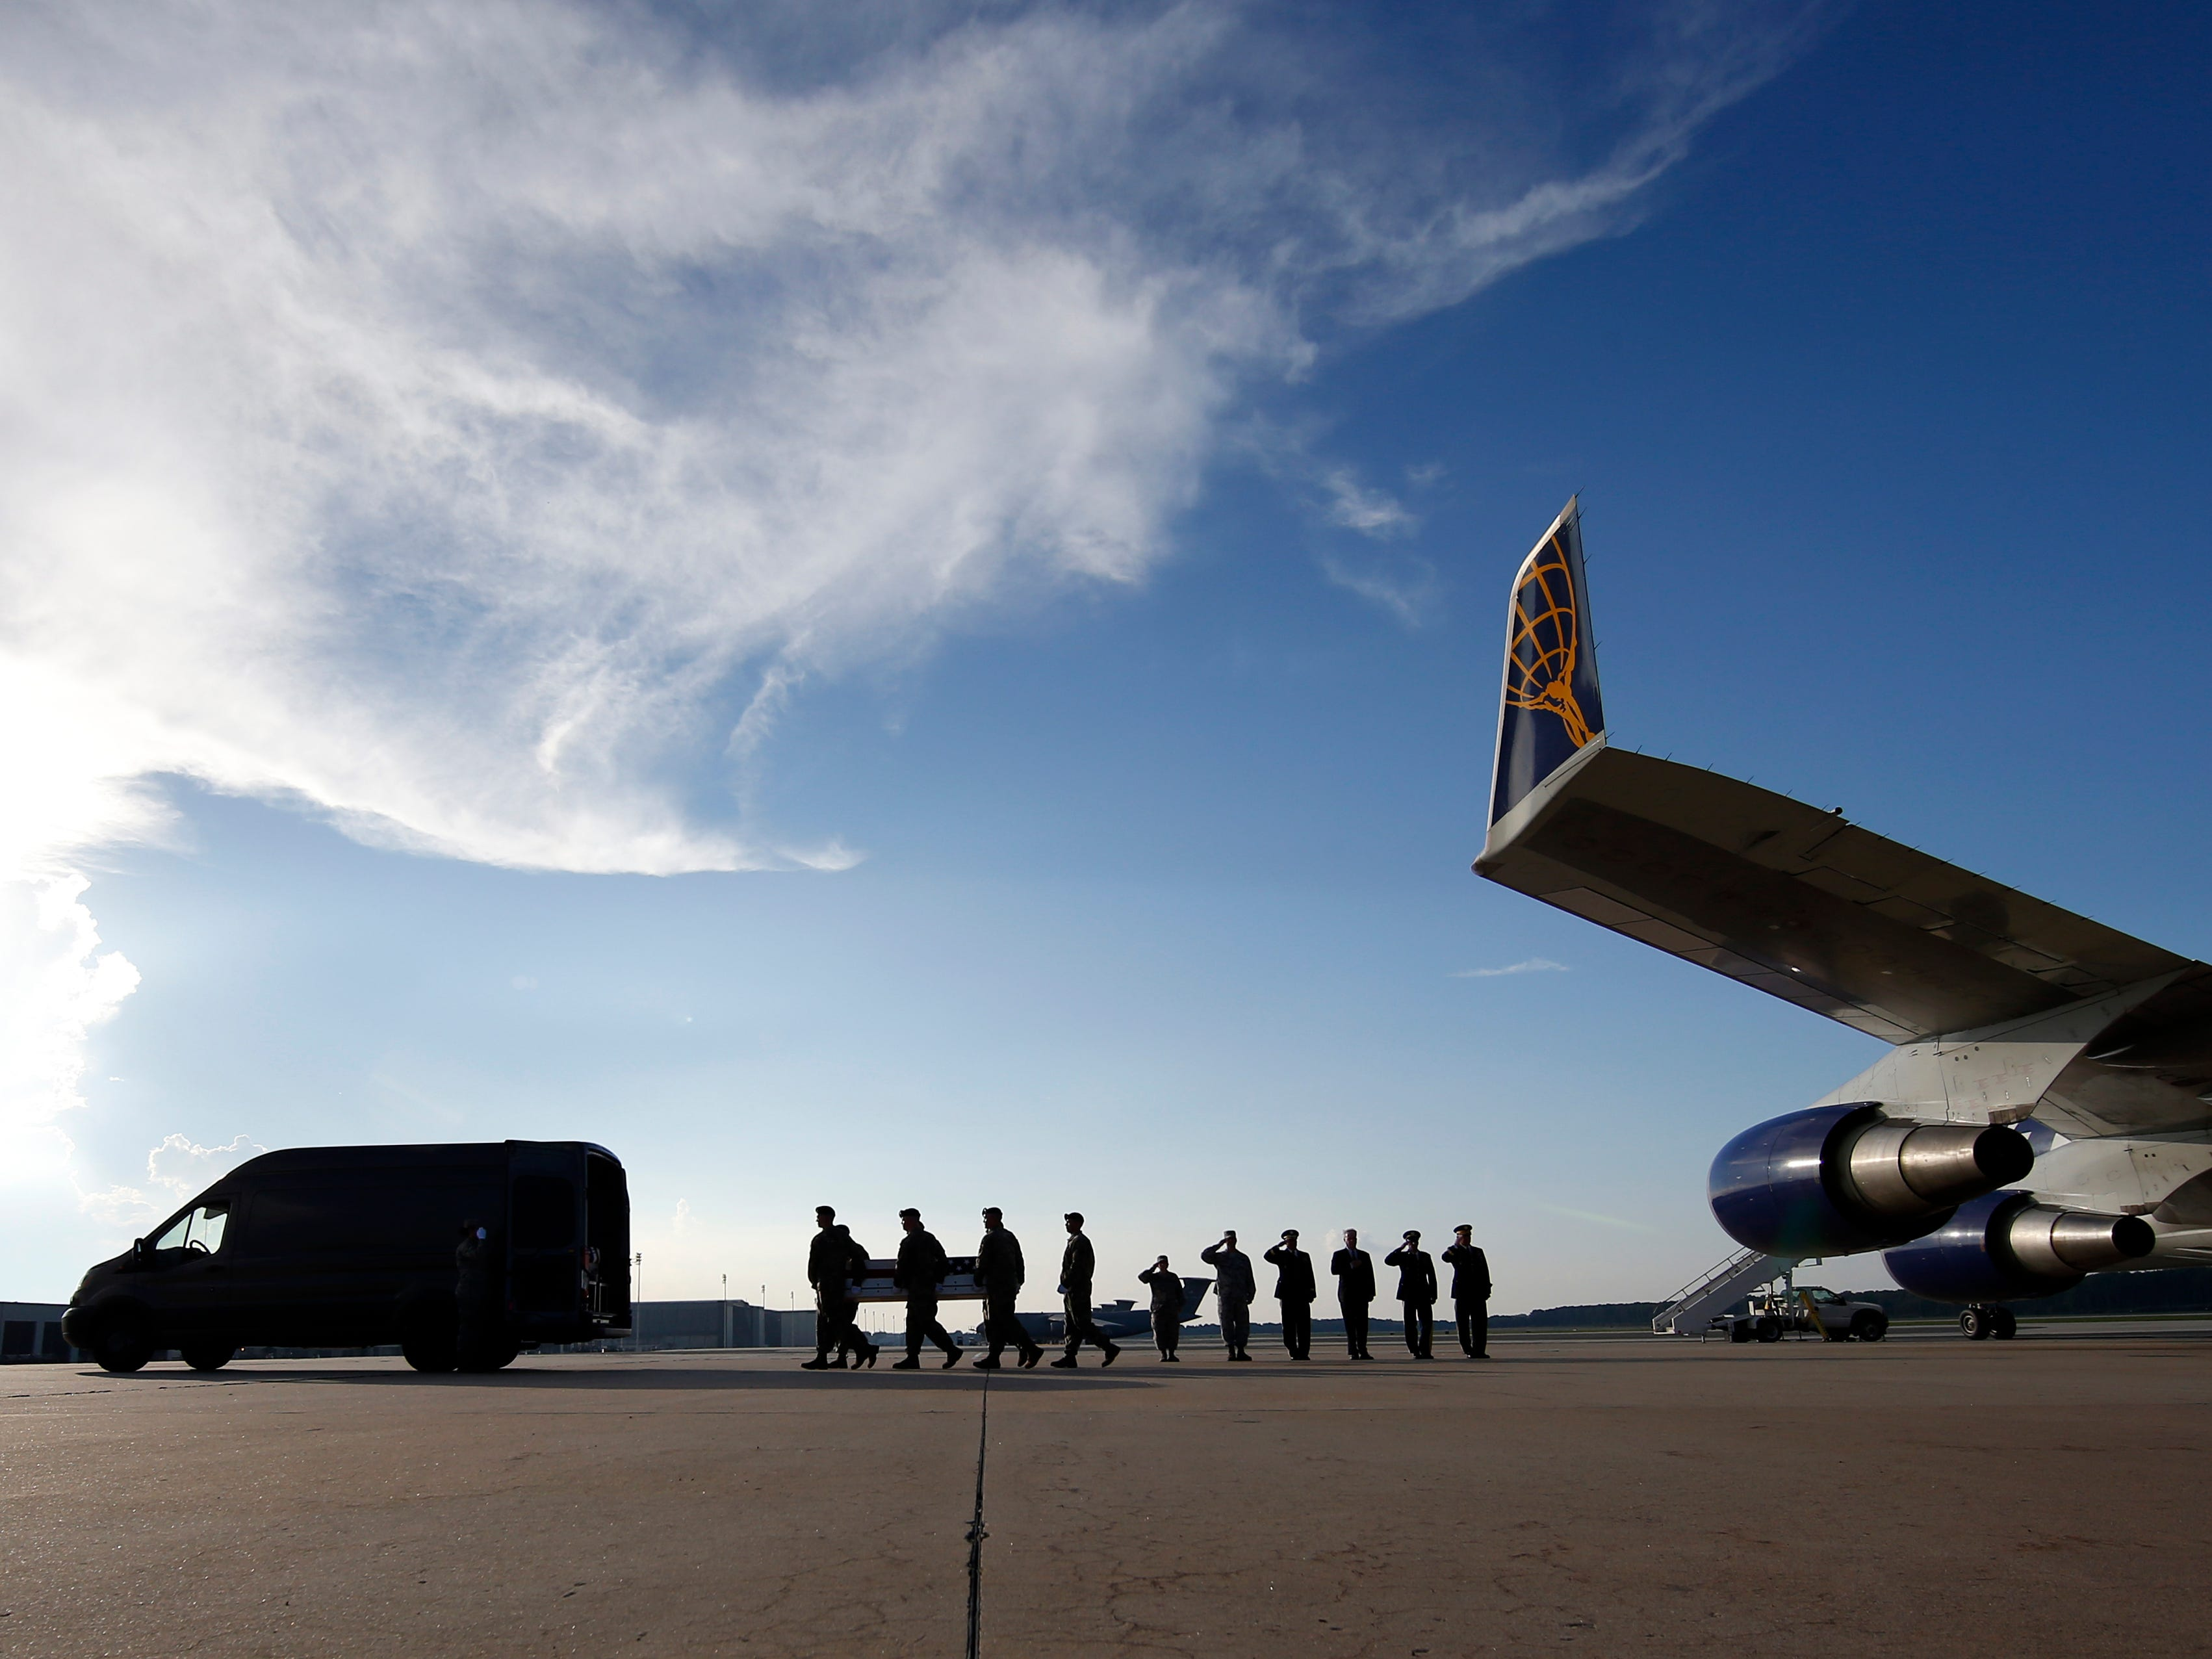 An Army carry team moves a transfer case containing the remains of U.S. Army Staff Sgt. Diobanjo S. San Agustin as members of the Official Party salute at Dover Air Force Base.